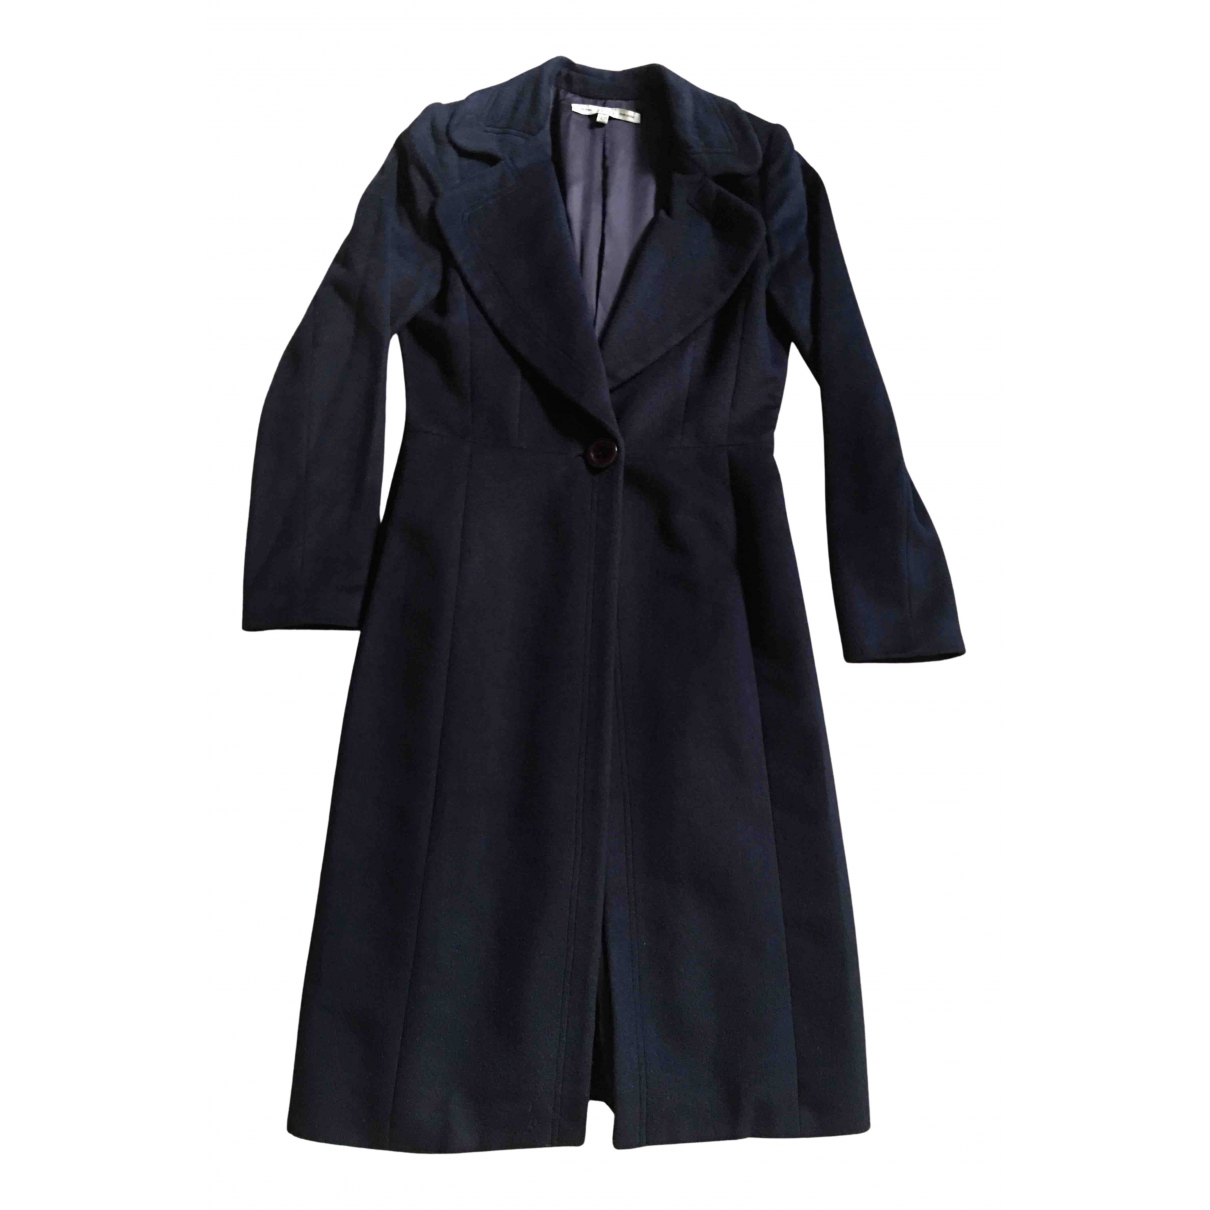 Gianfranco Ferré N Blue Cashmere coat for Women 42 IT